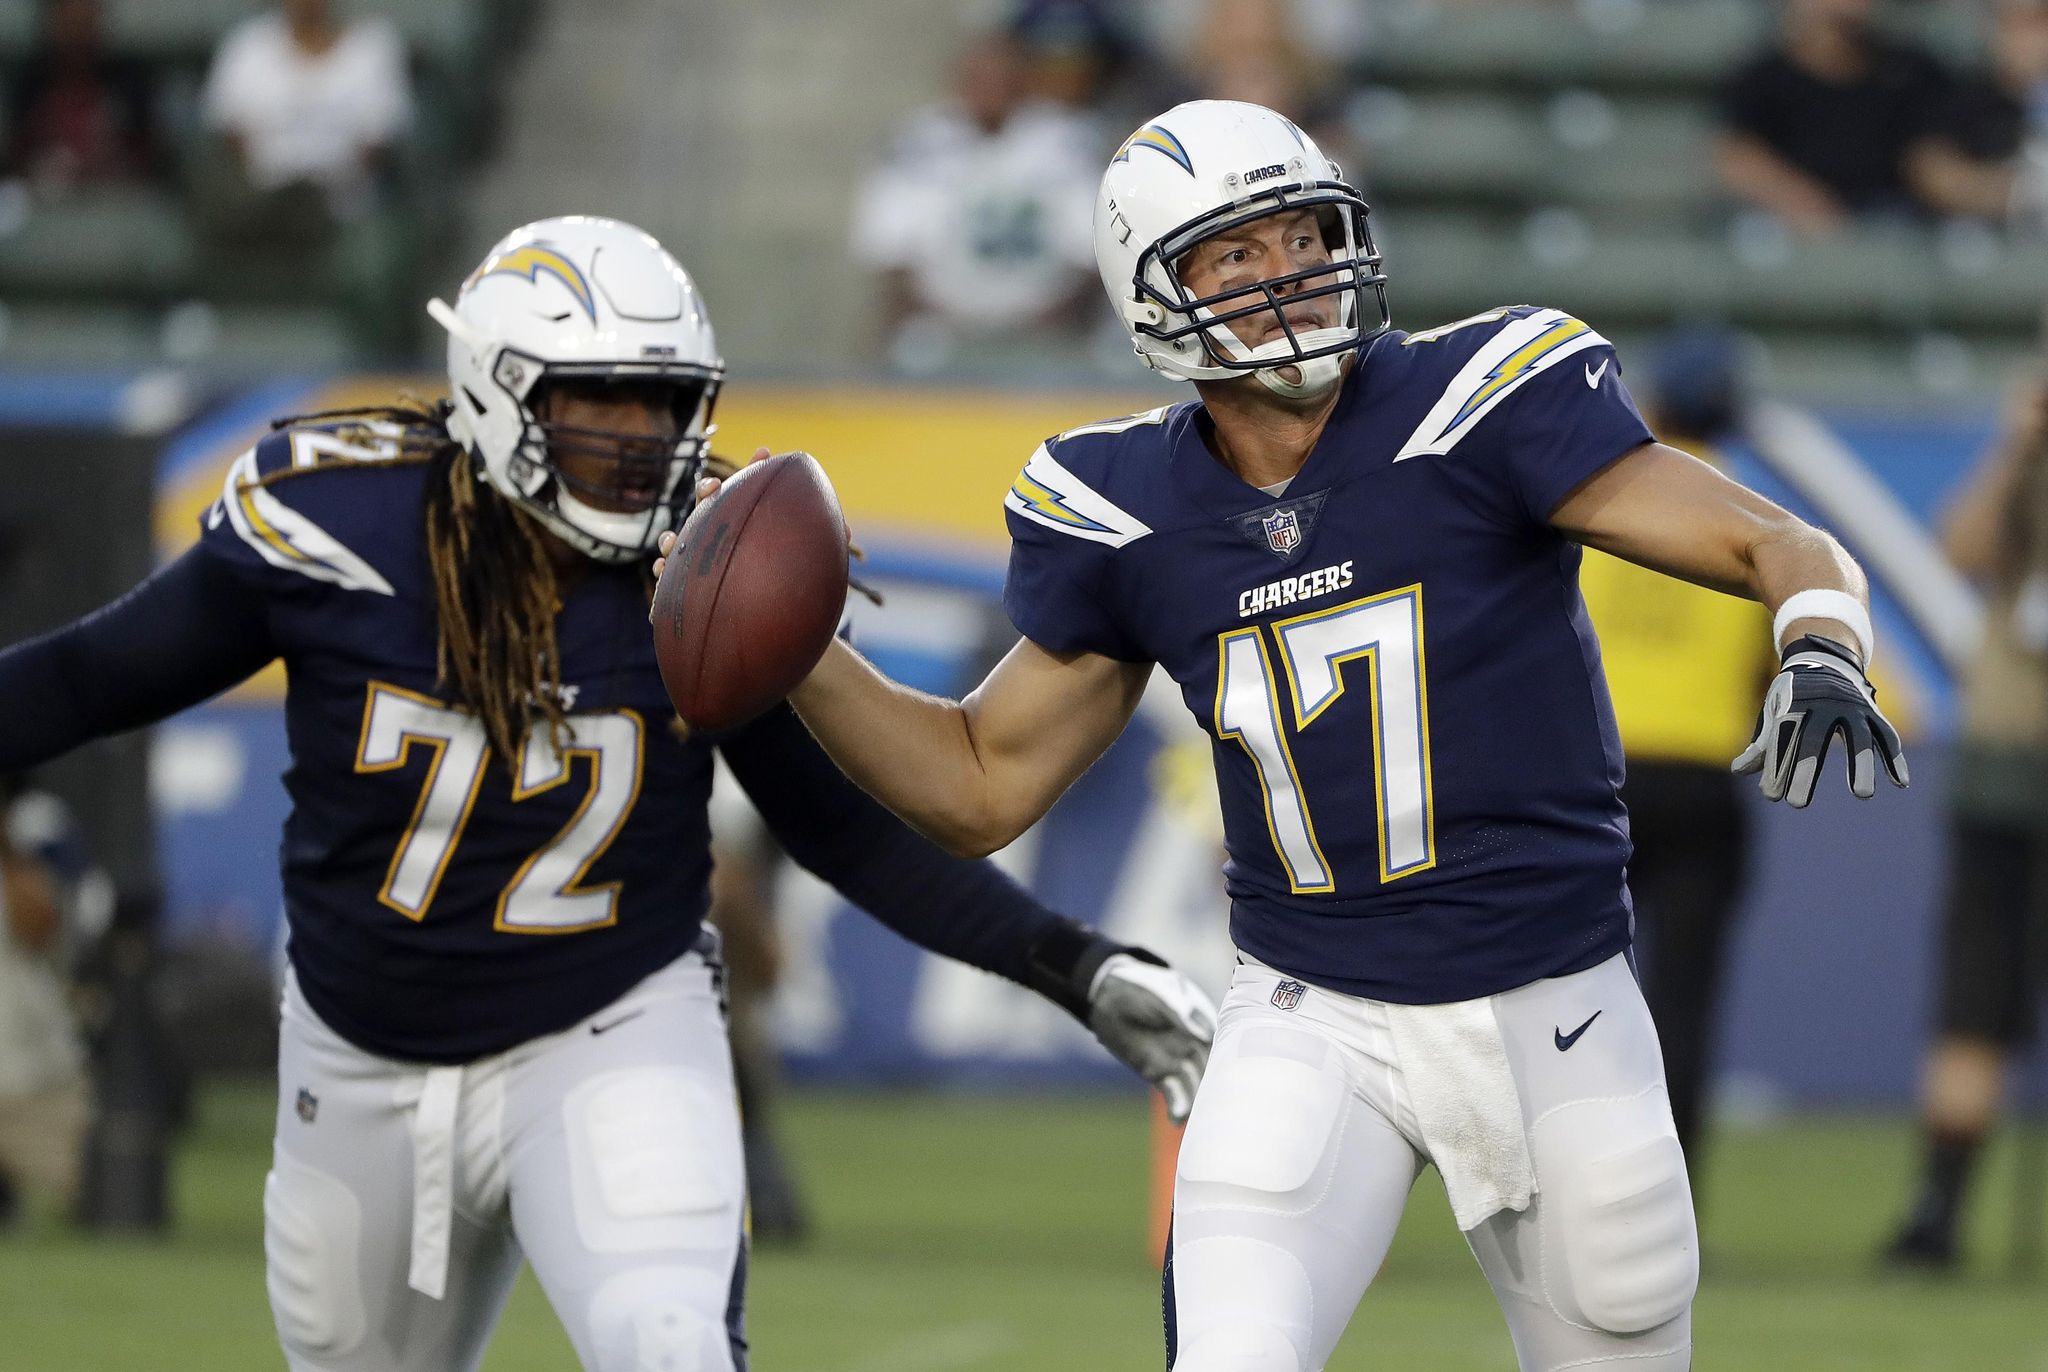 Seahawks_chargers_football_33688_s2048x1372